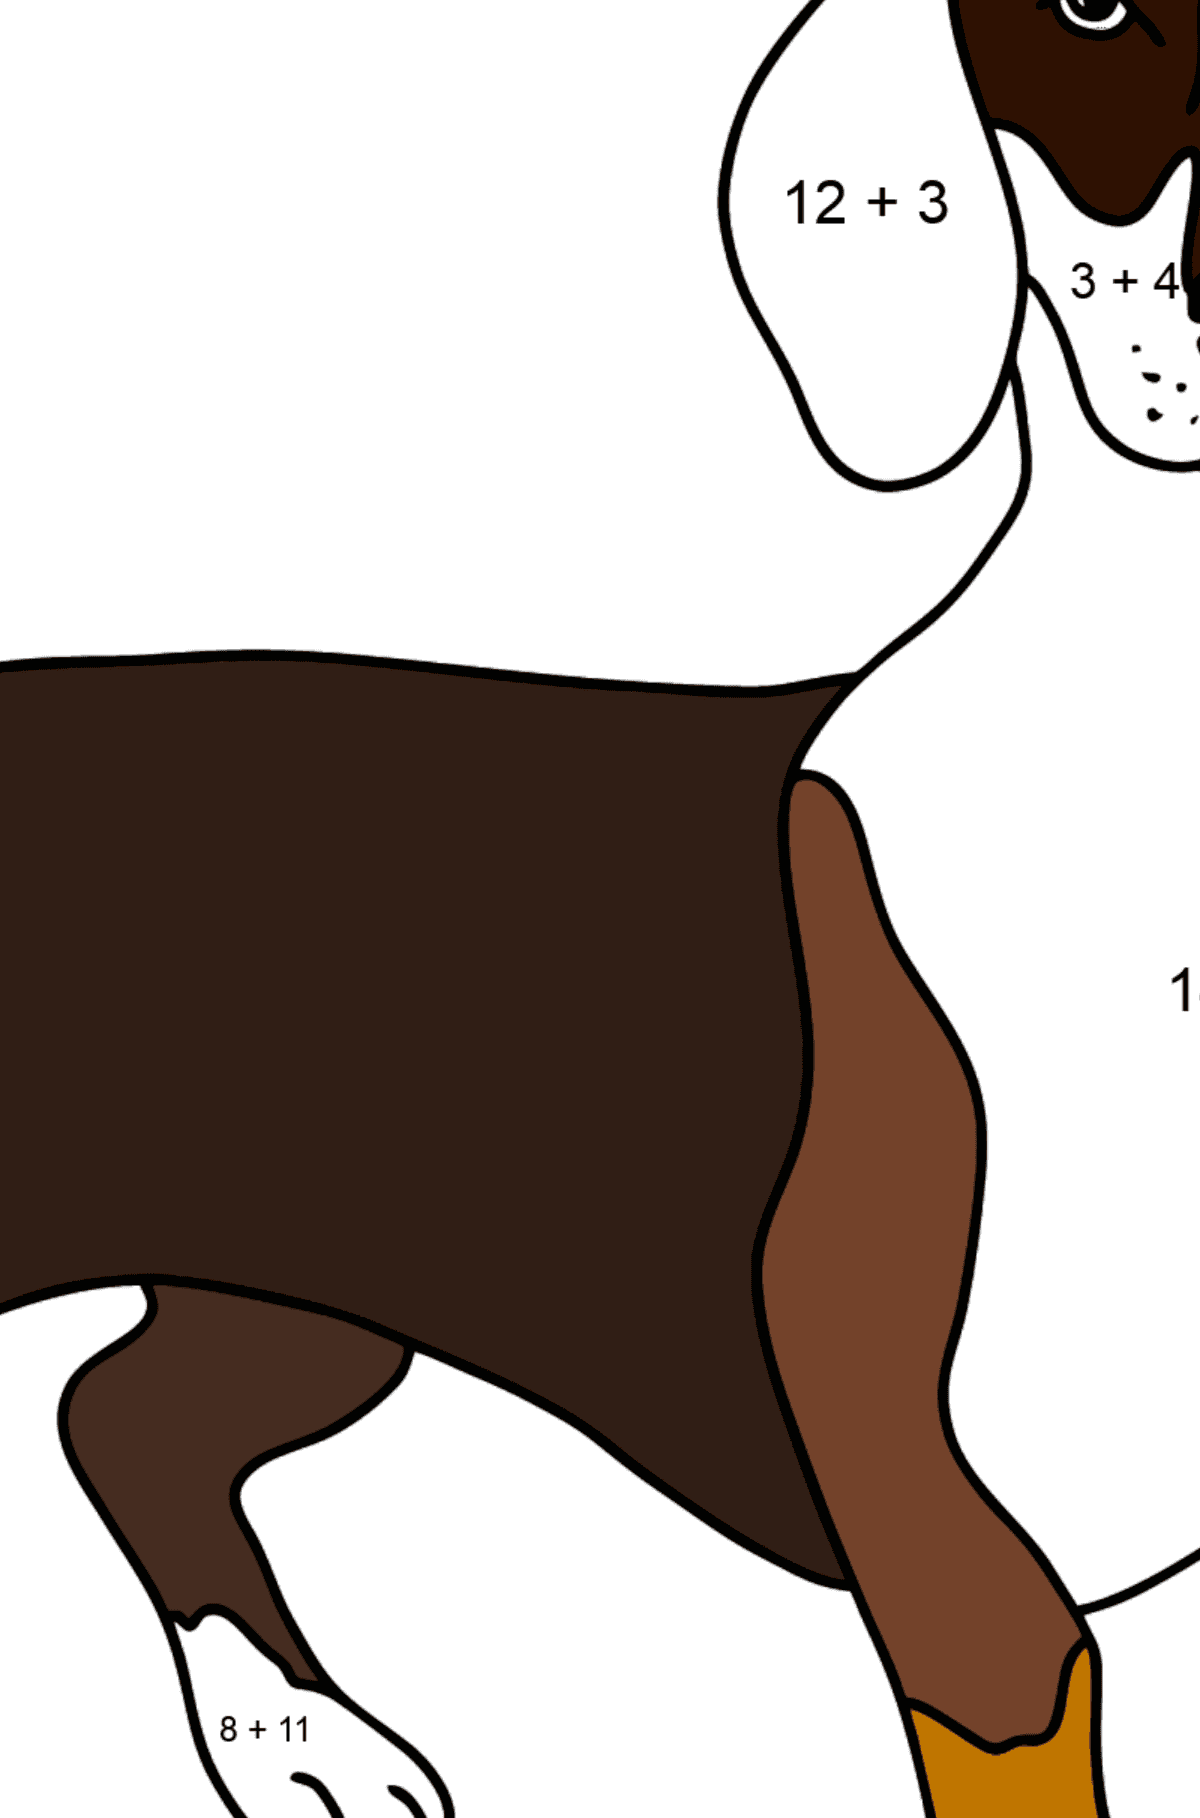 Dachshund coloring page - Math Coloring - Addition for Kids